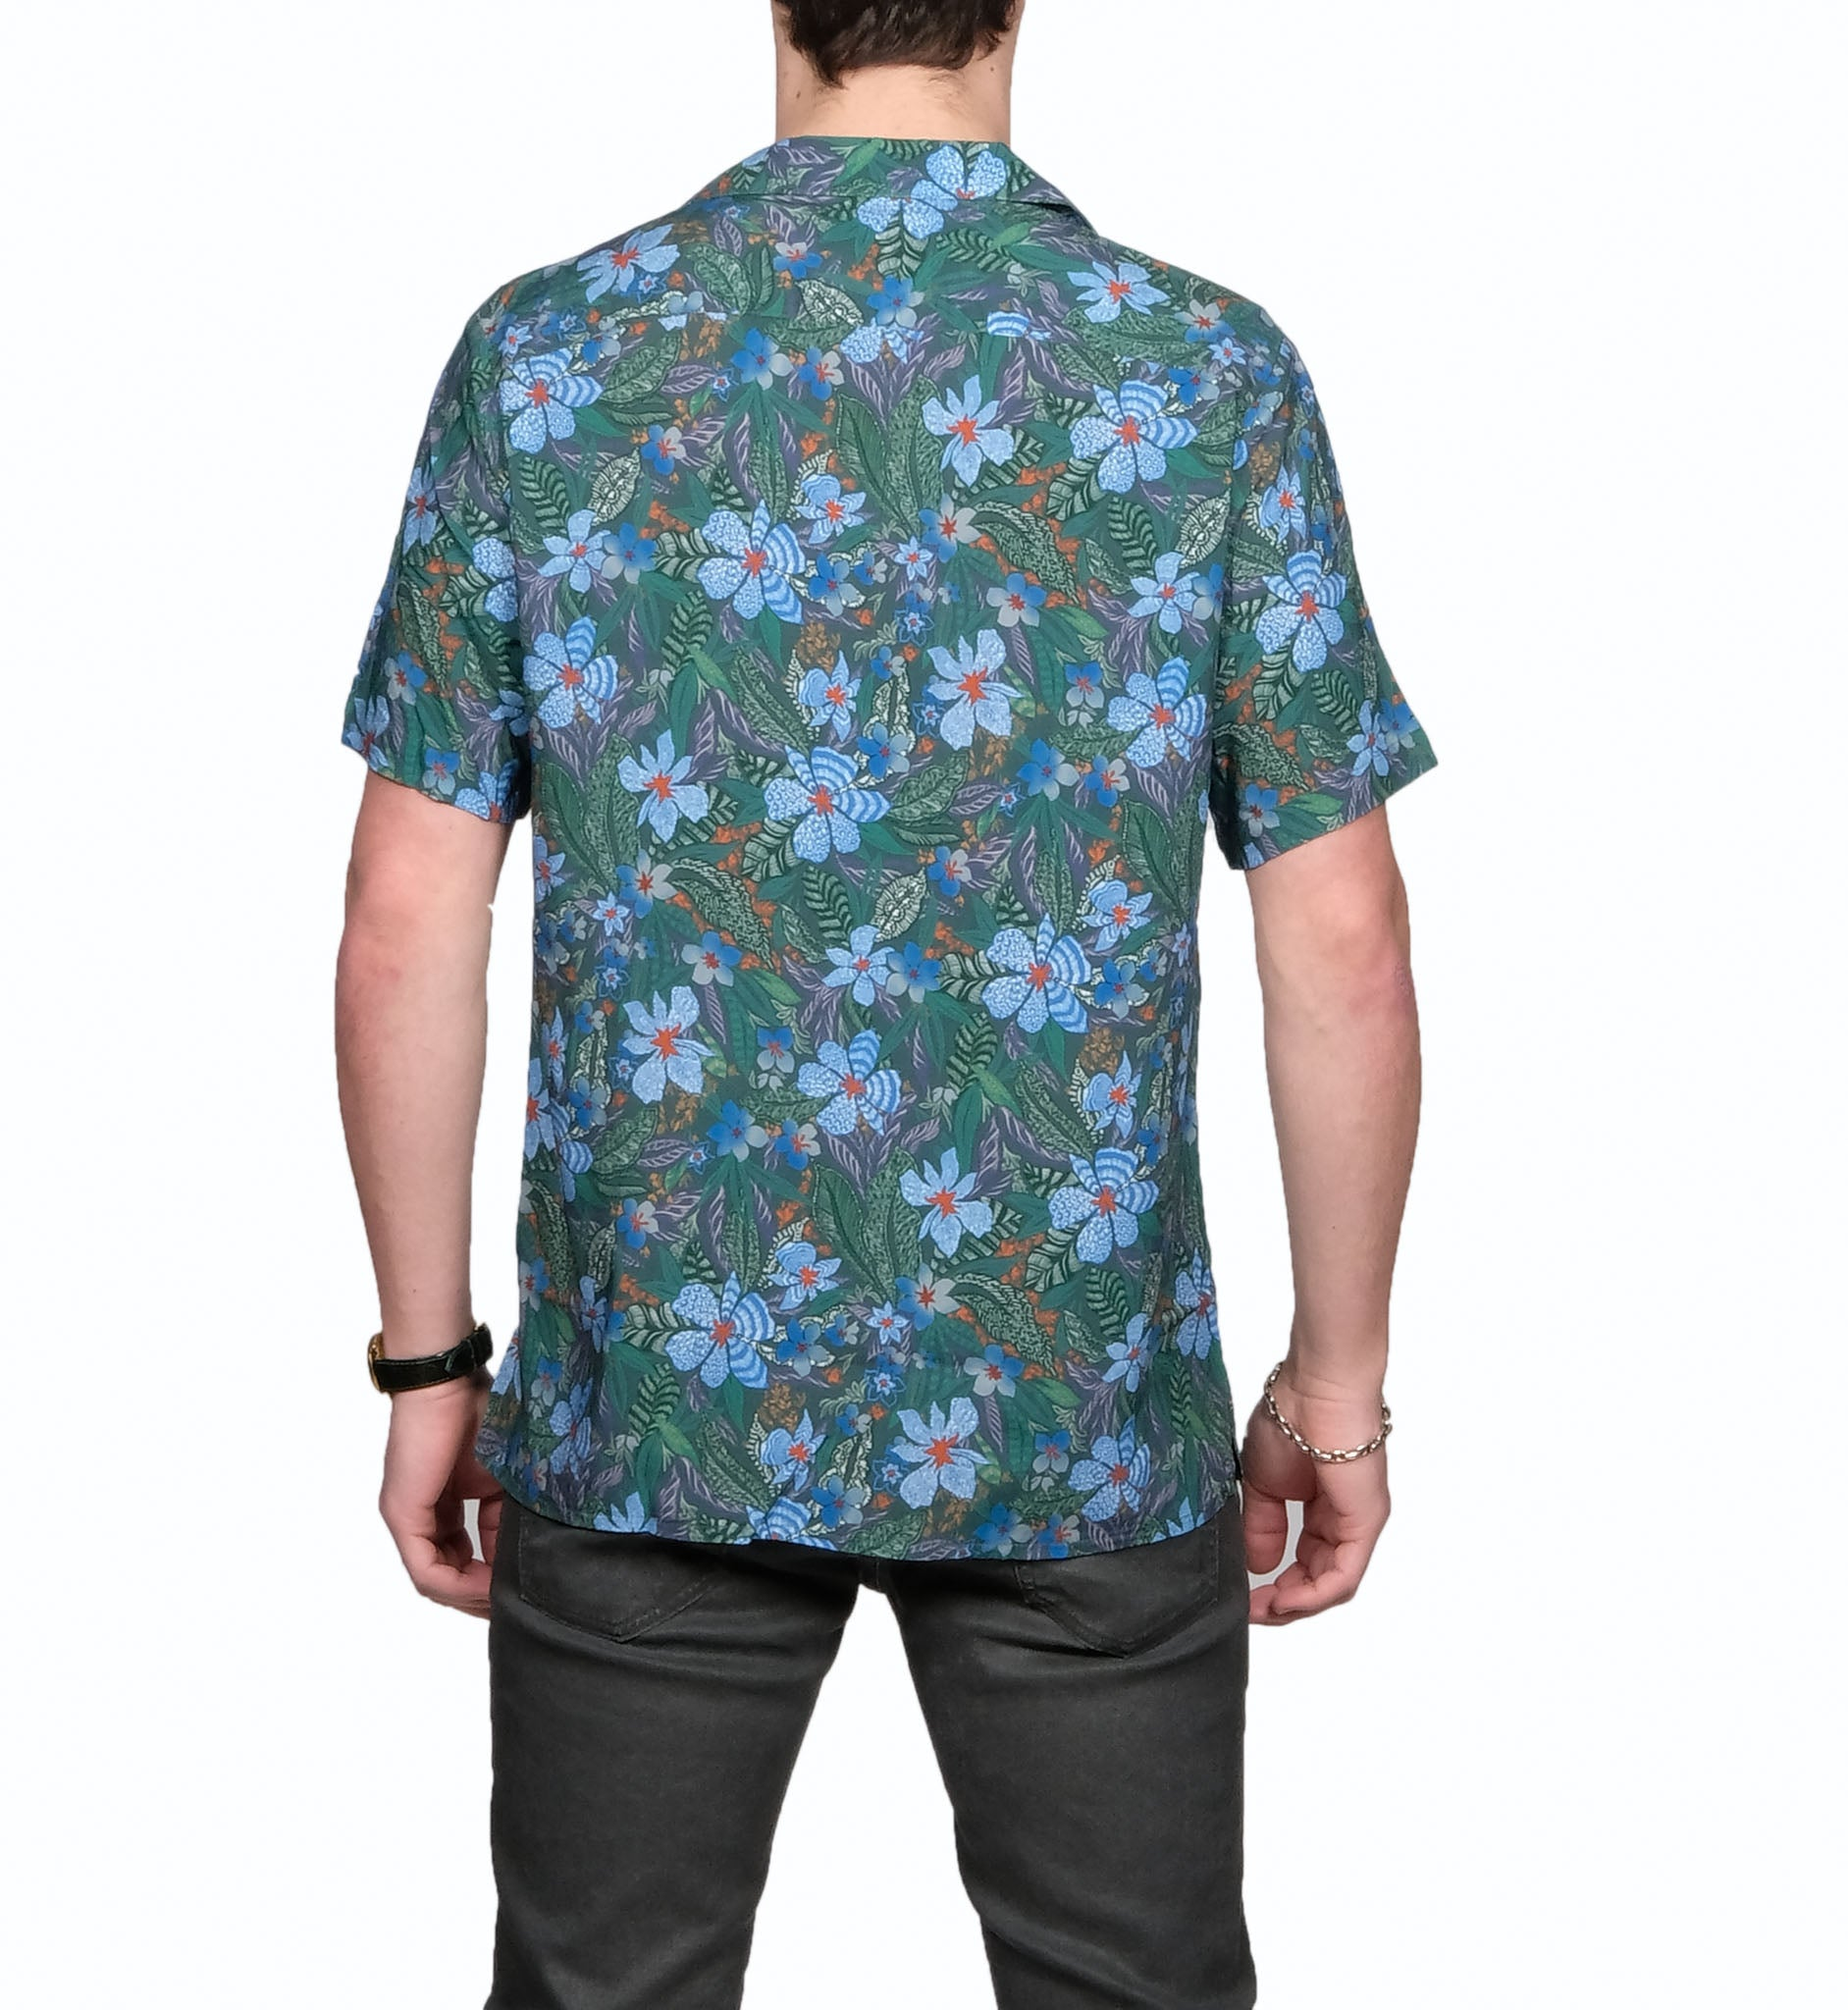 Flower Camp Collar Shirt - Mr. Derk Apparel Ltd.